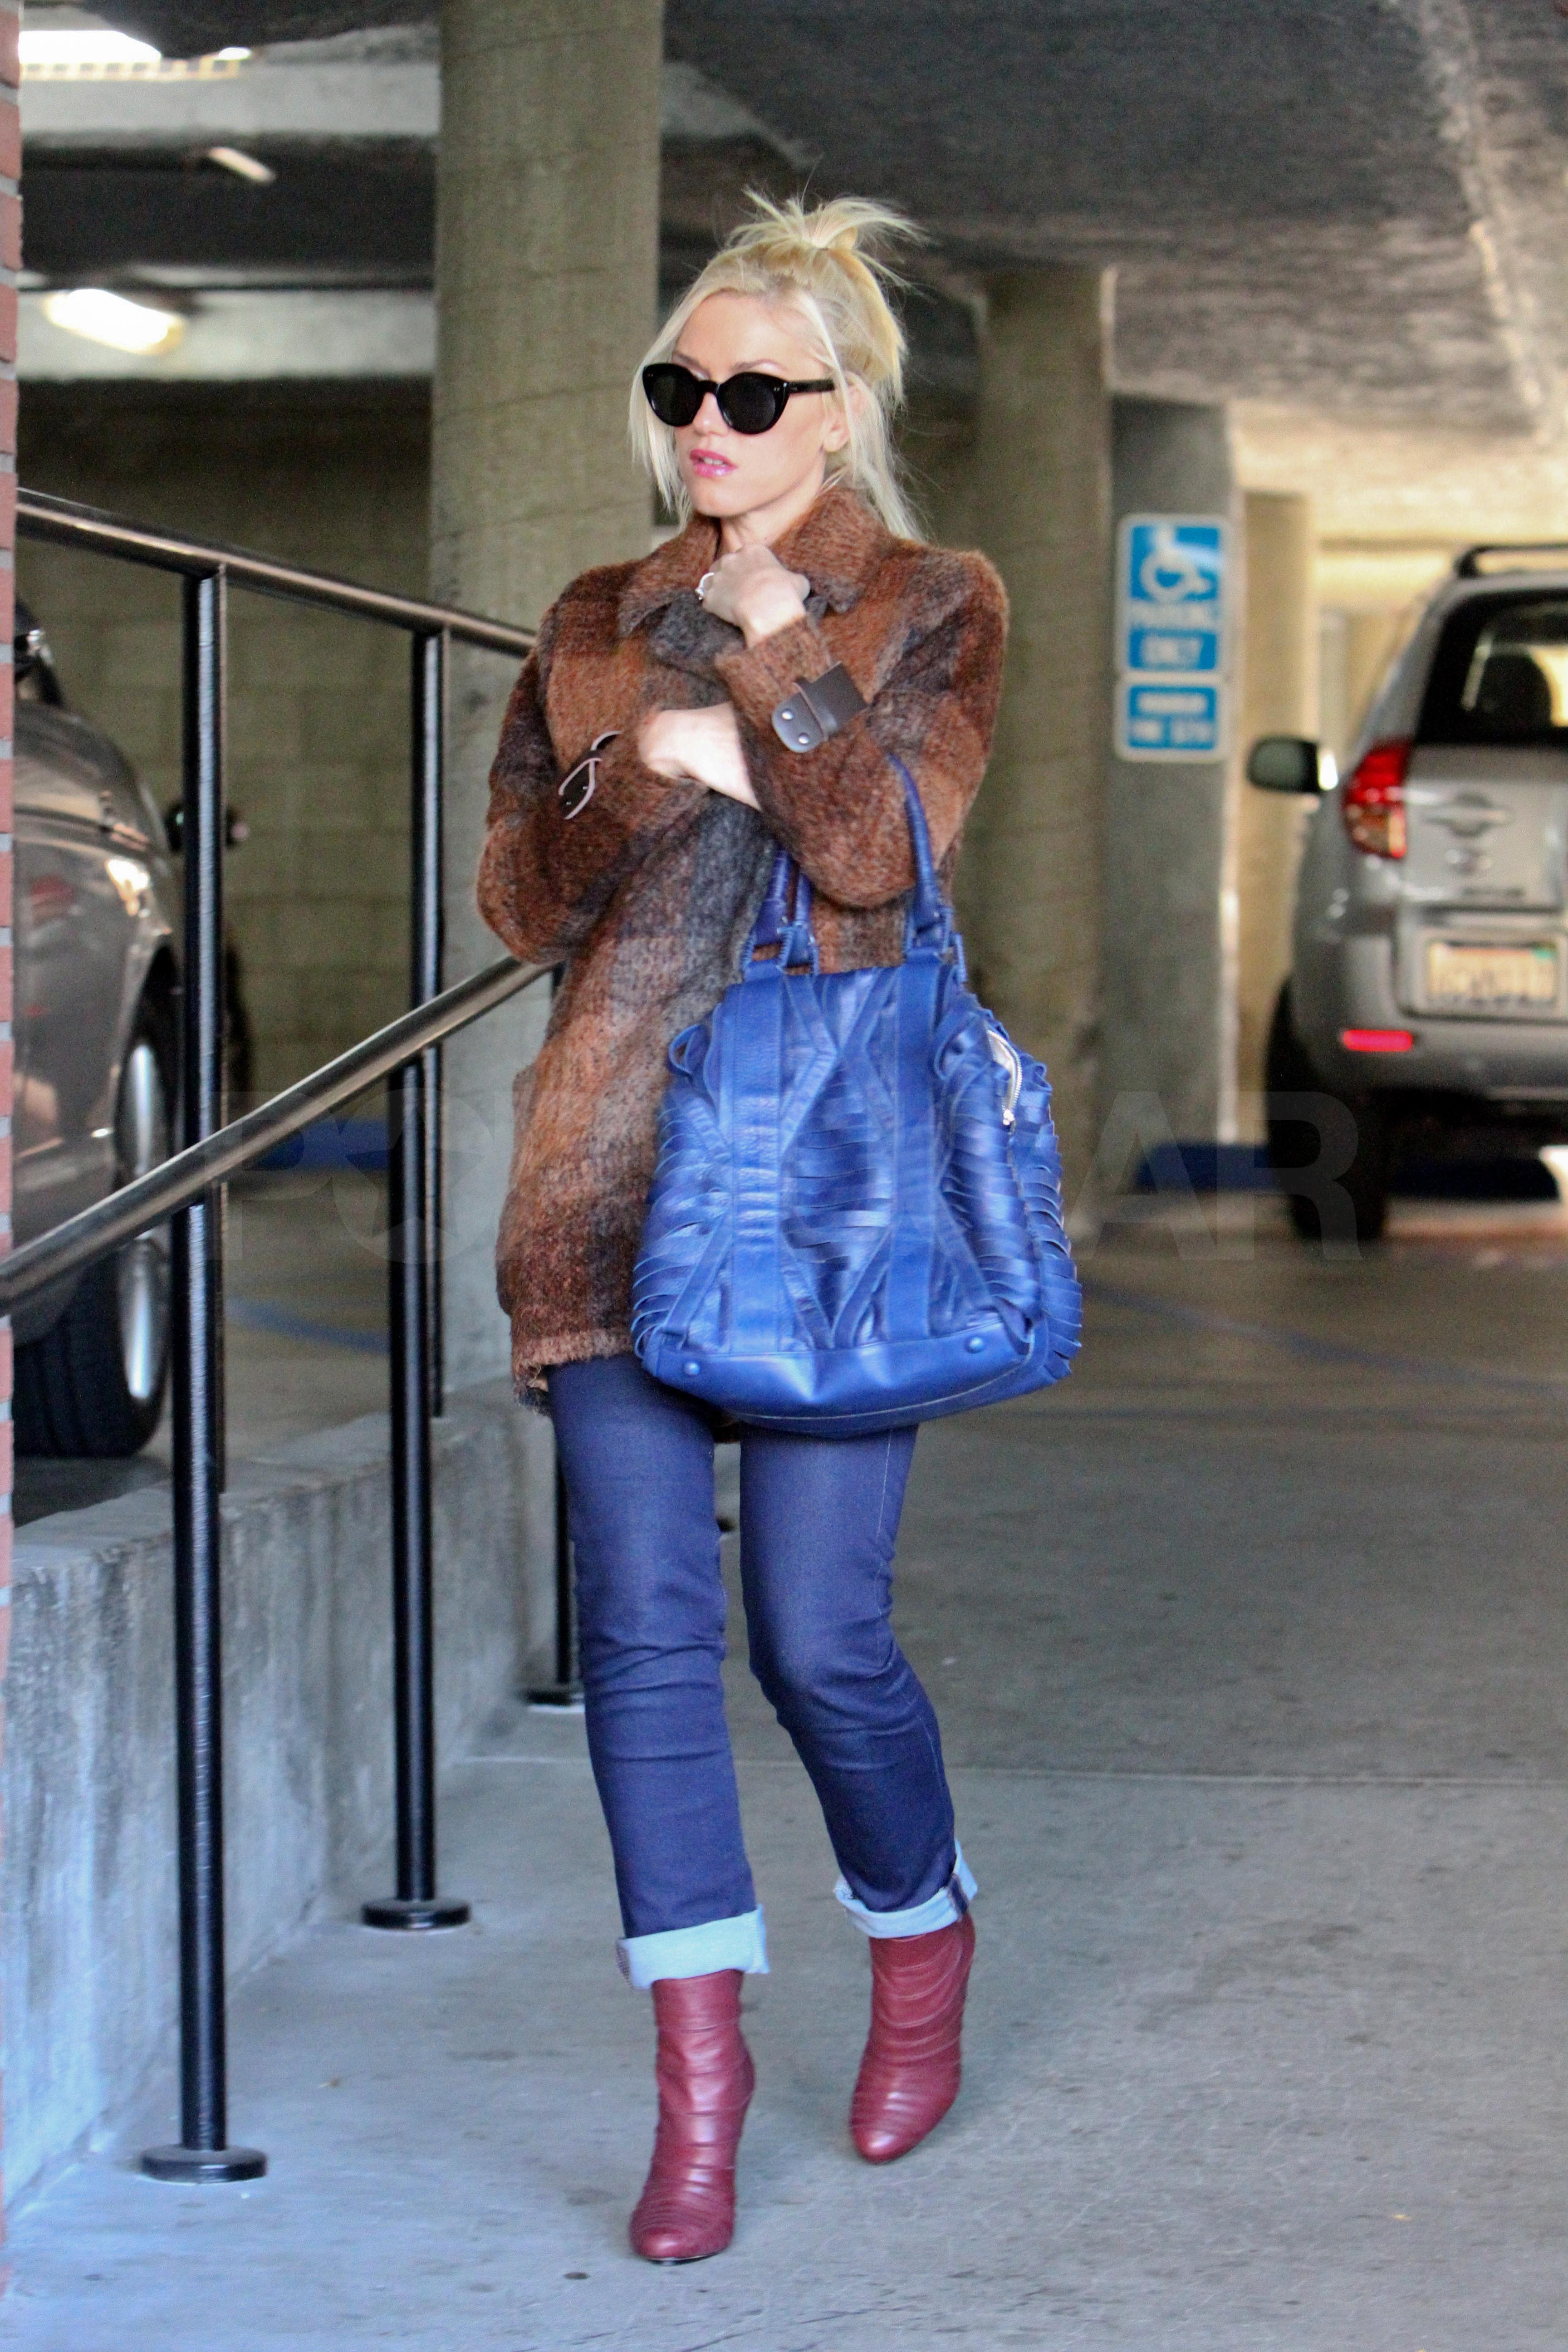 Gwen carried a bright blue bag to a meeting.